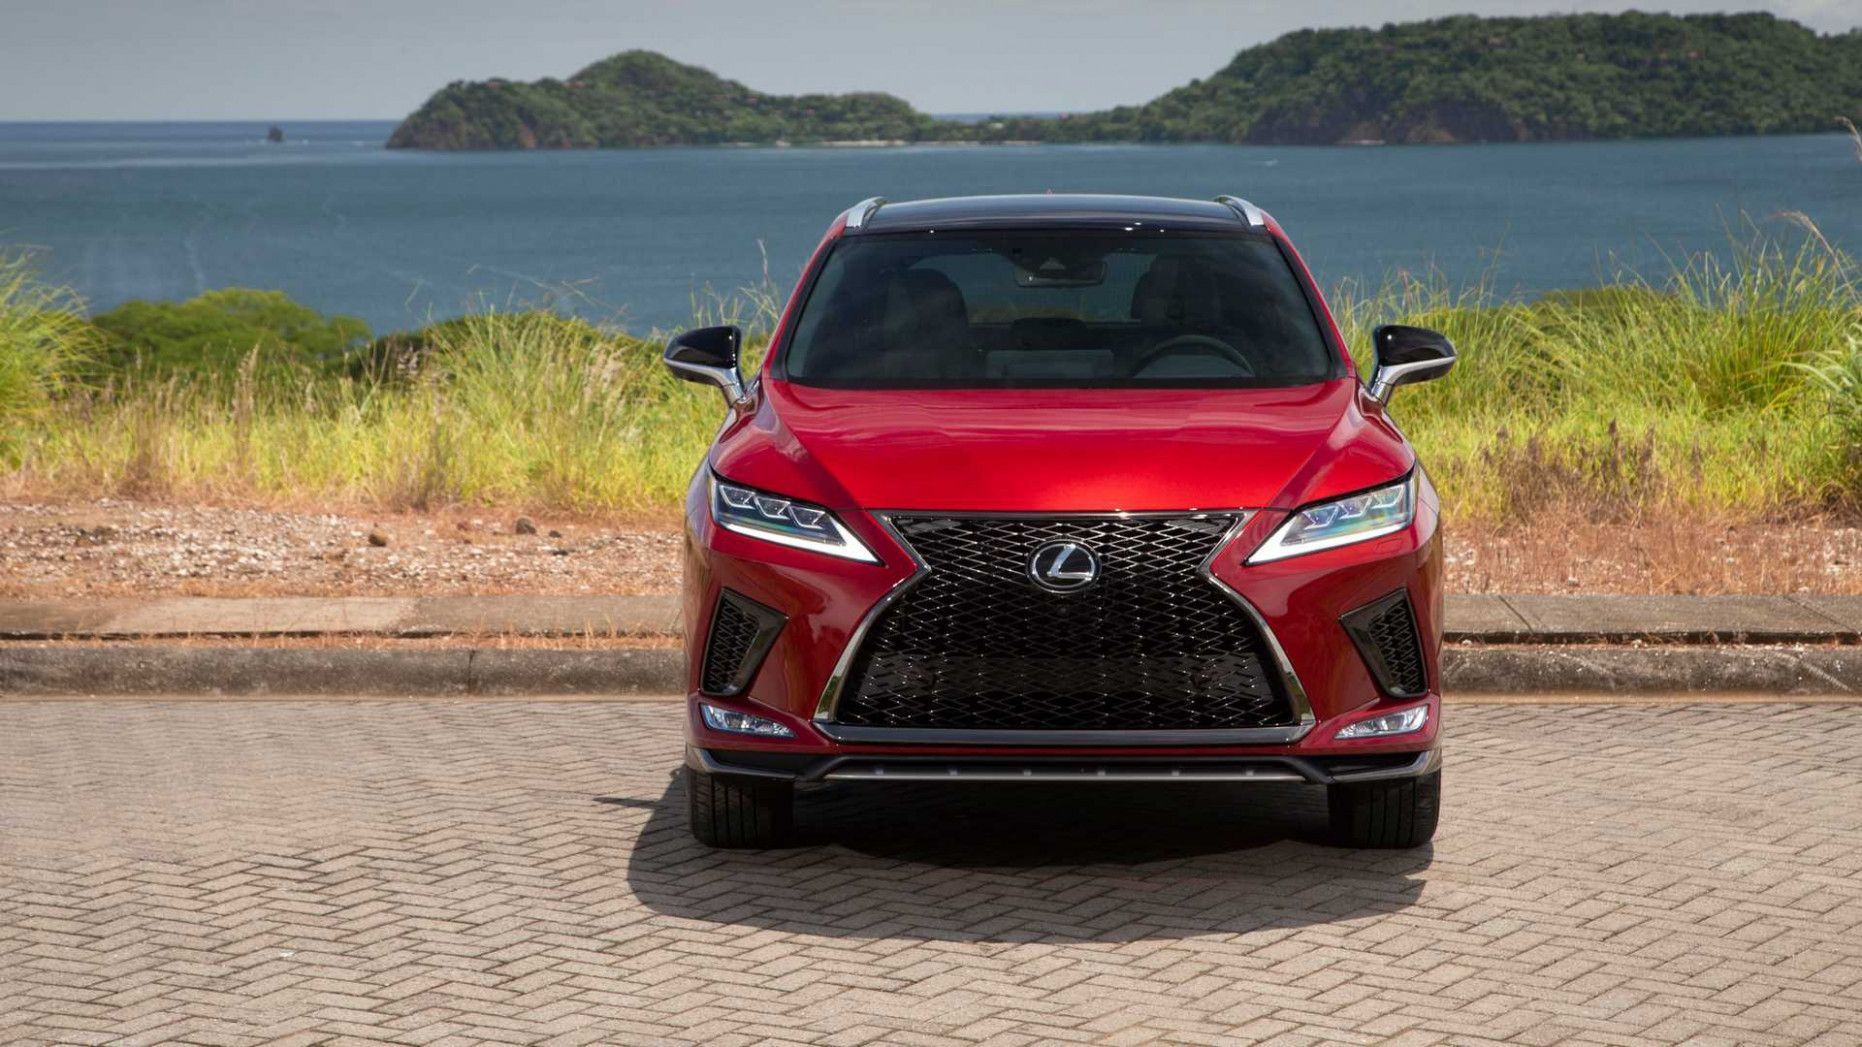 2020 Lexus F Sport 350 Review And Release Date 2020 Car Reviews The Latest Information About New Cars Release Date Redesign And Rumo In 2020 Lexus Rx 350 Bmw Lexus